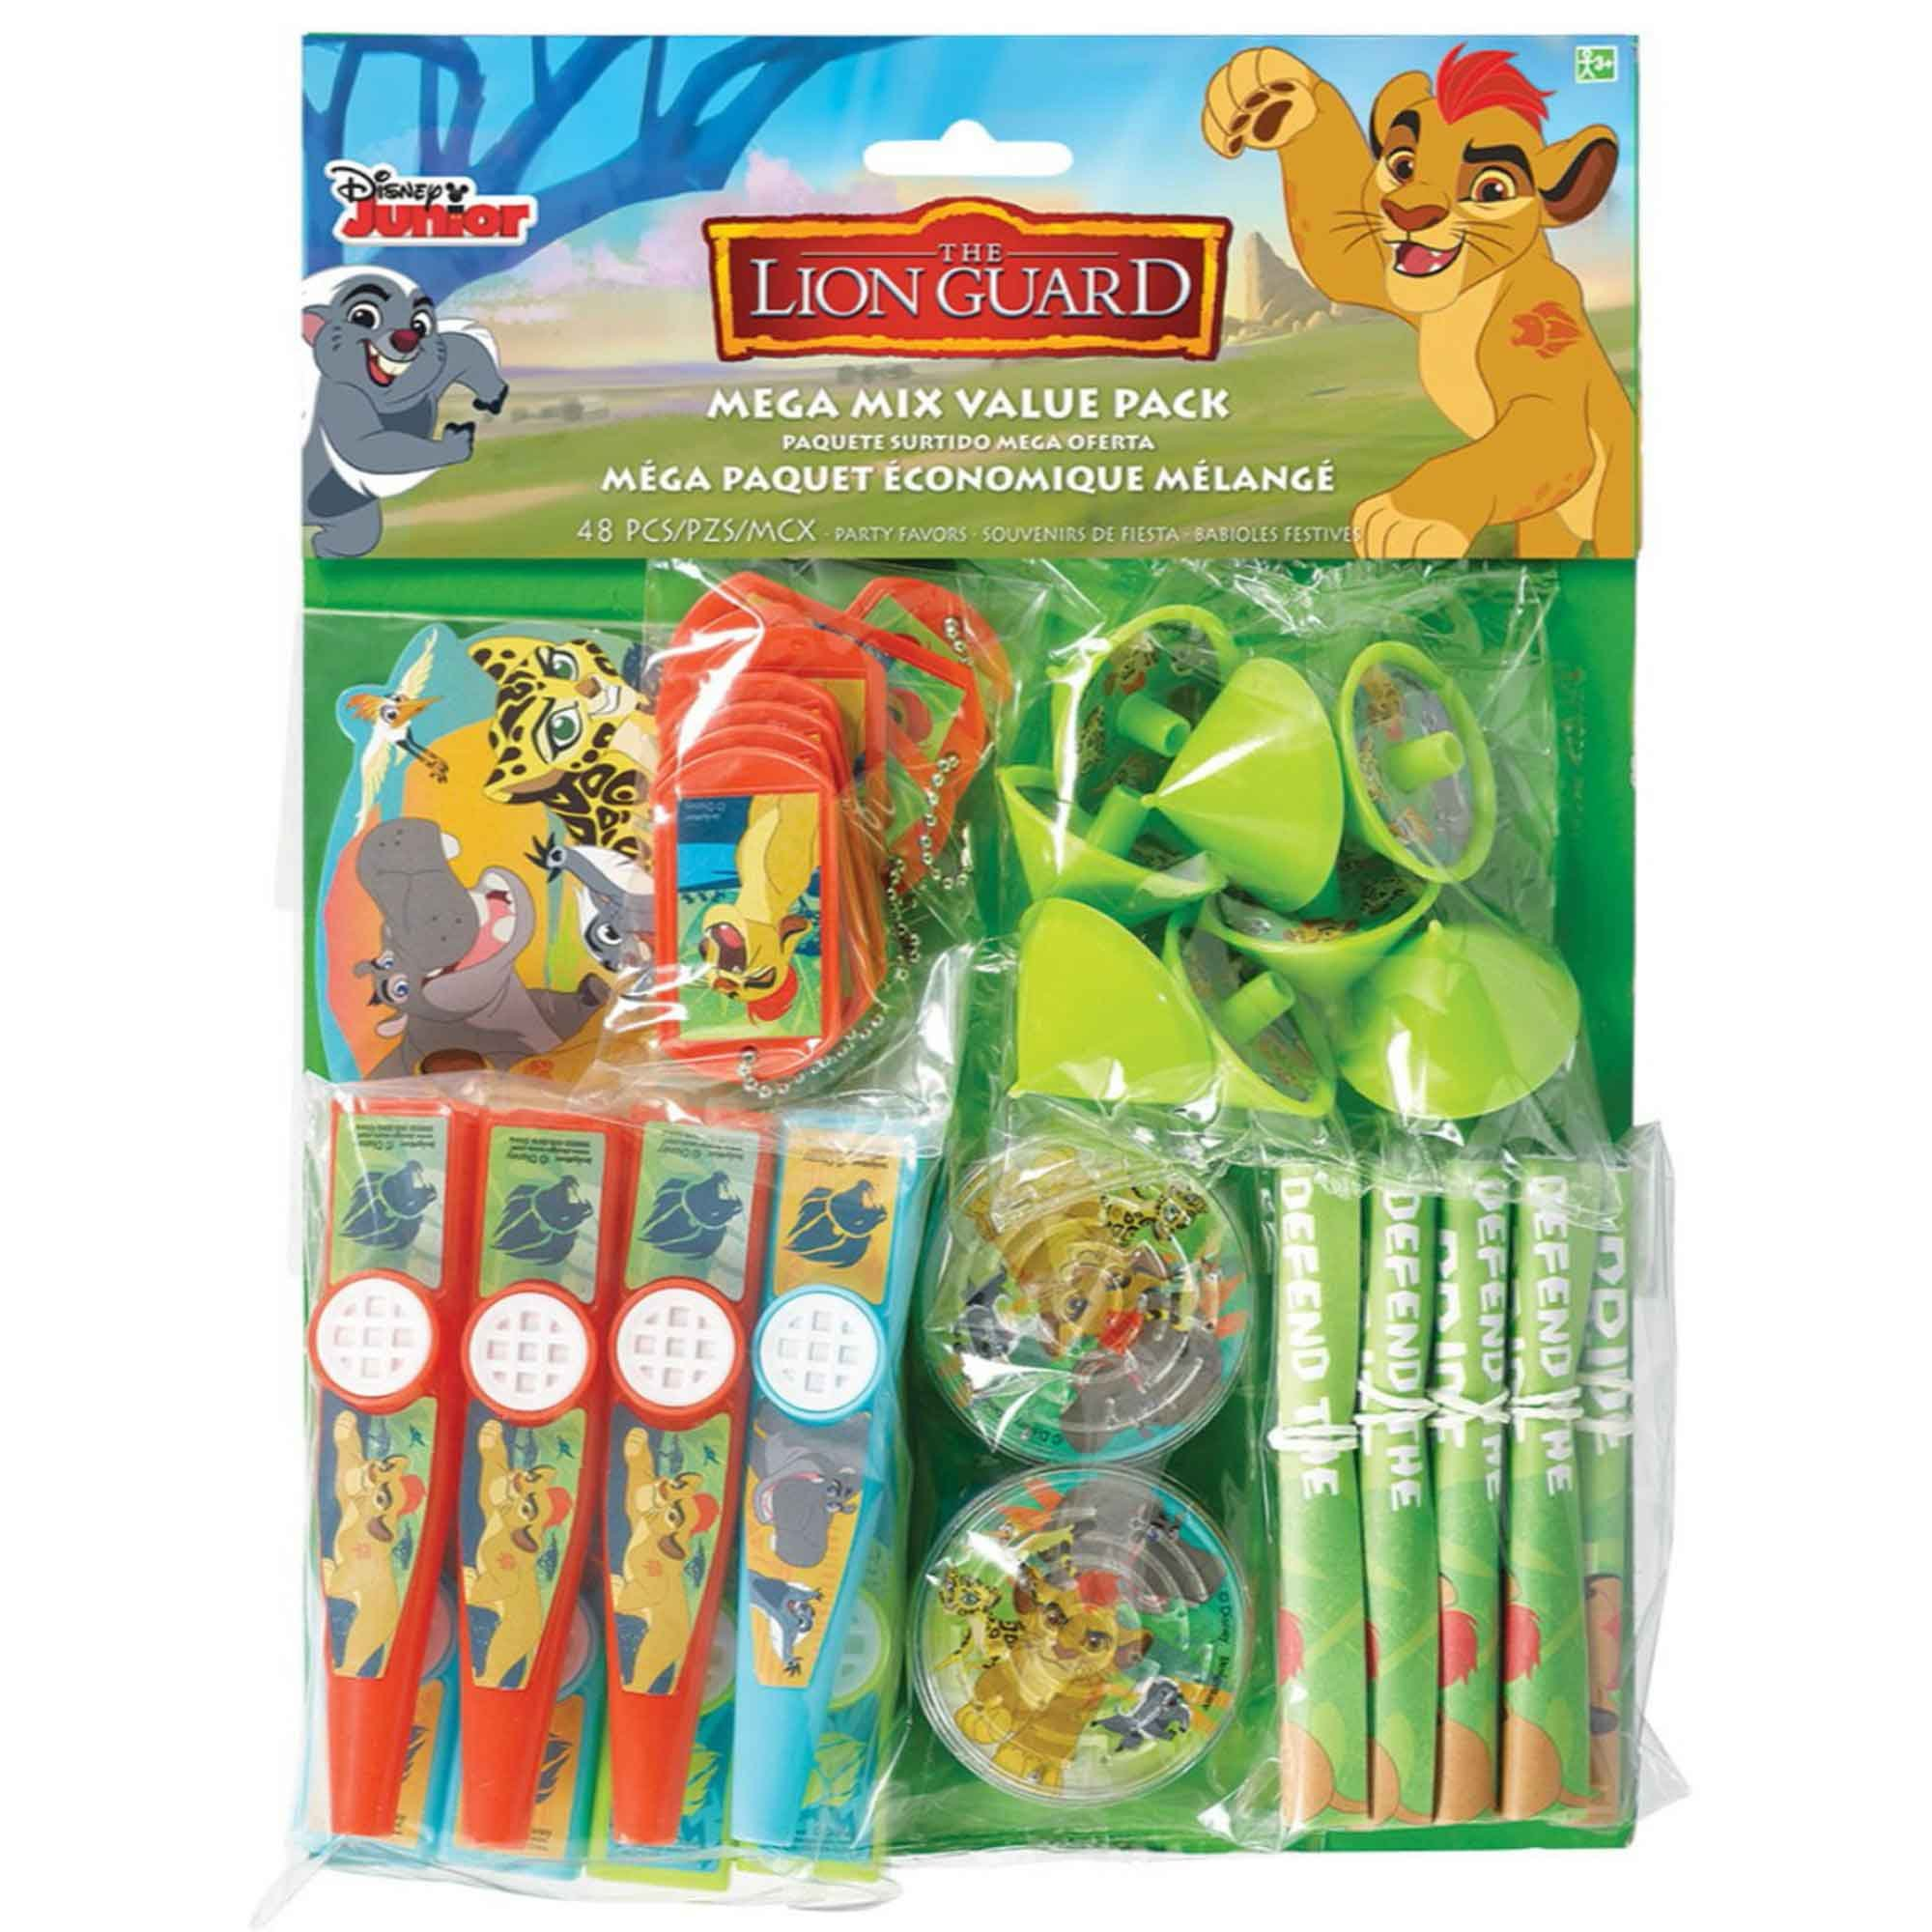 The Lion Guard Mega Mix Value Pack Favors